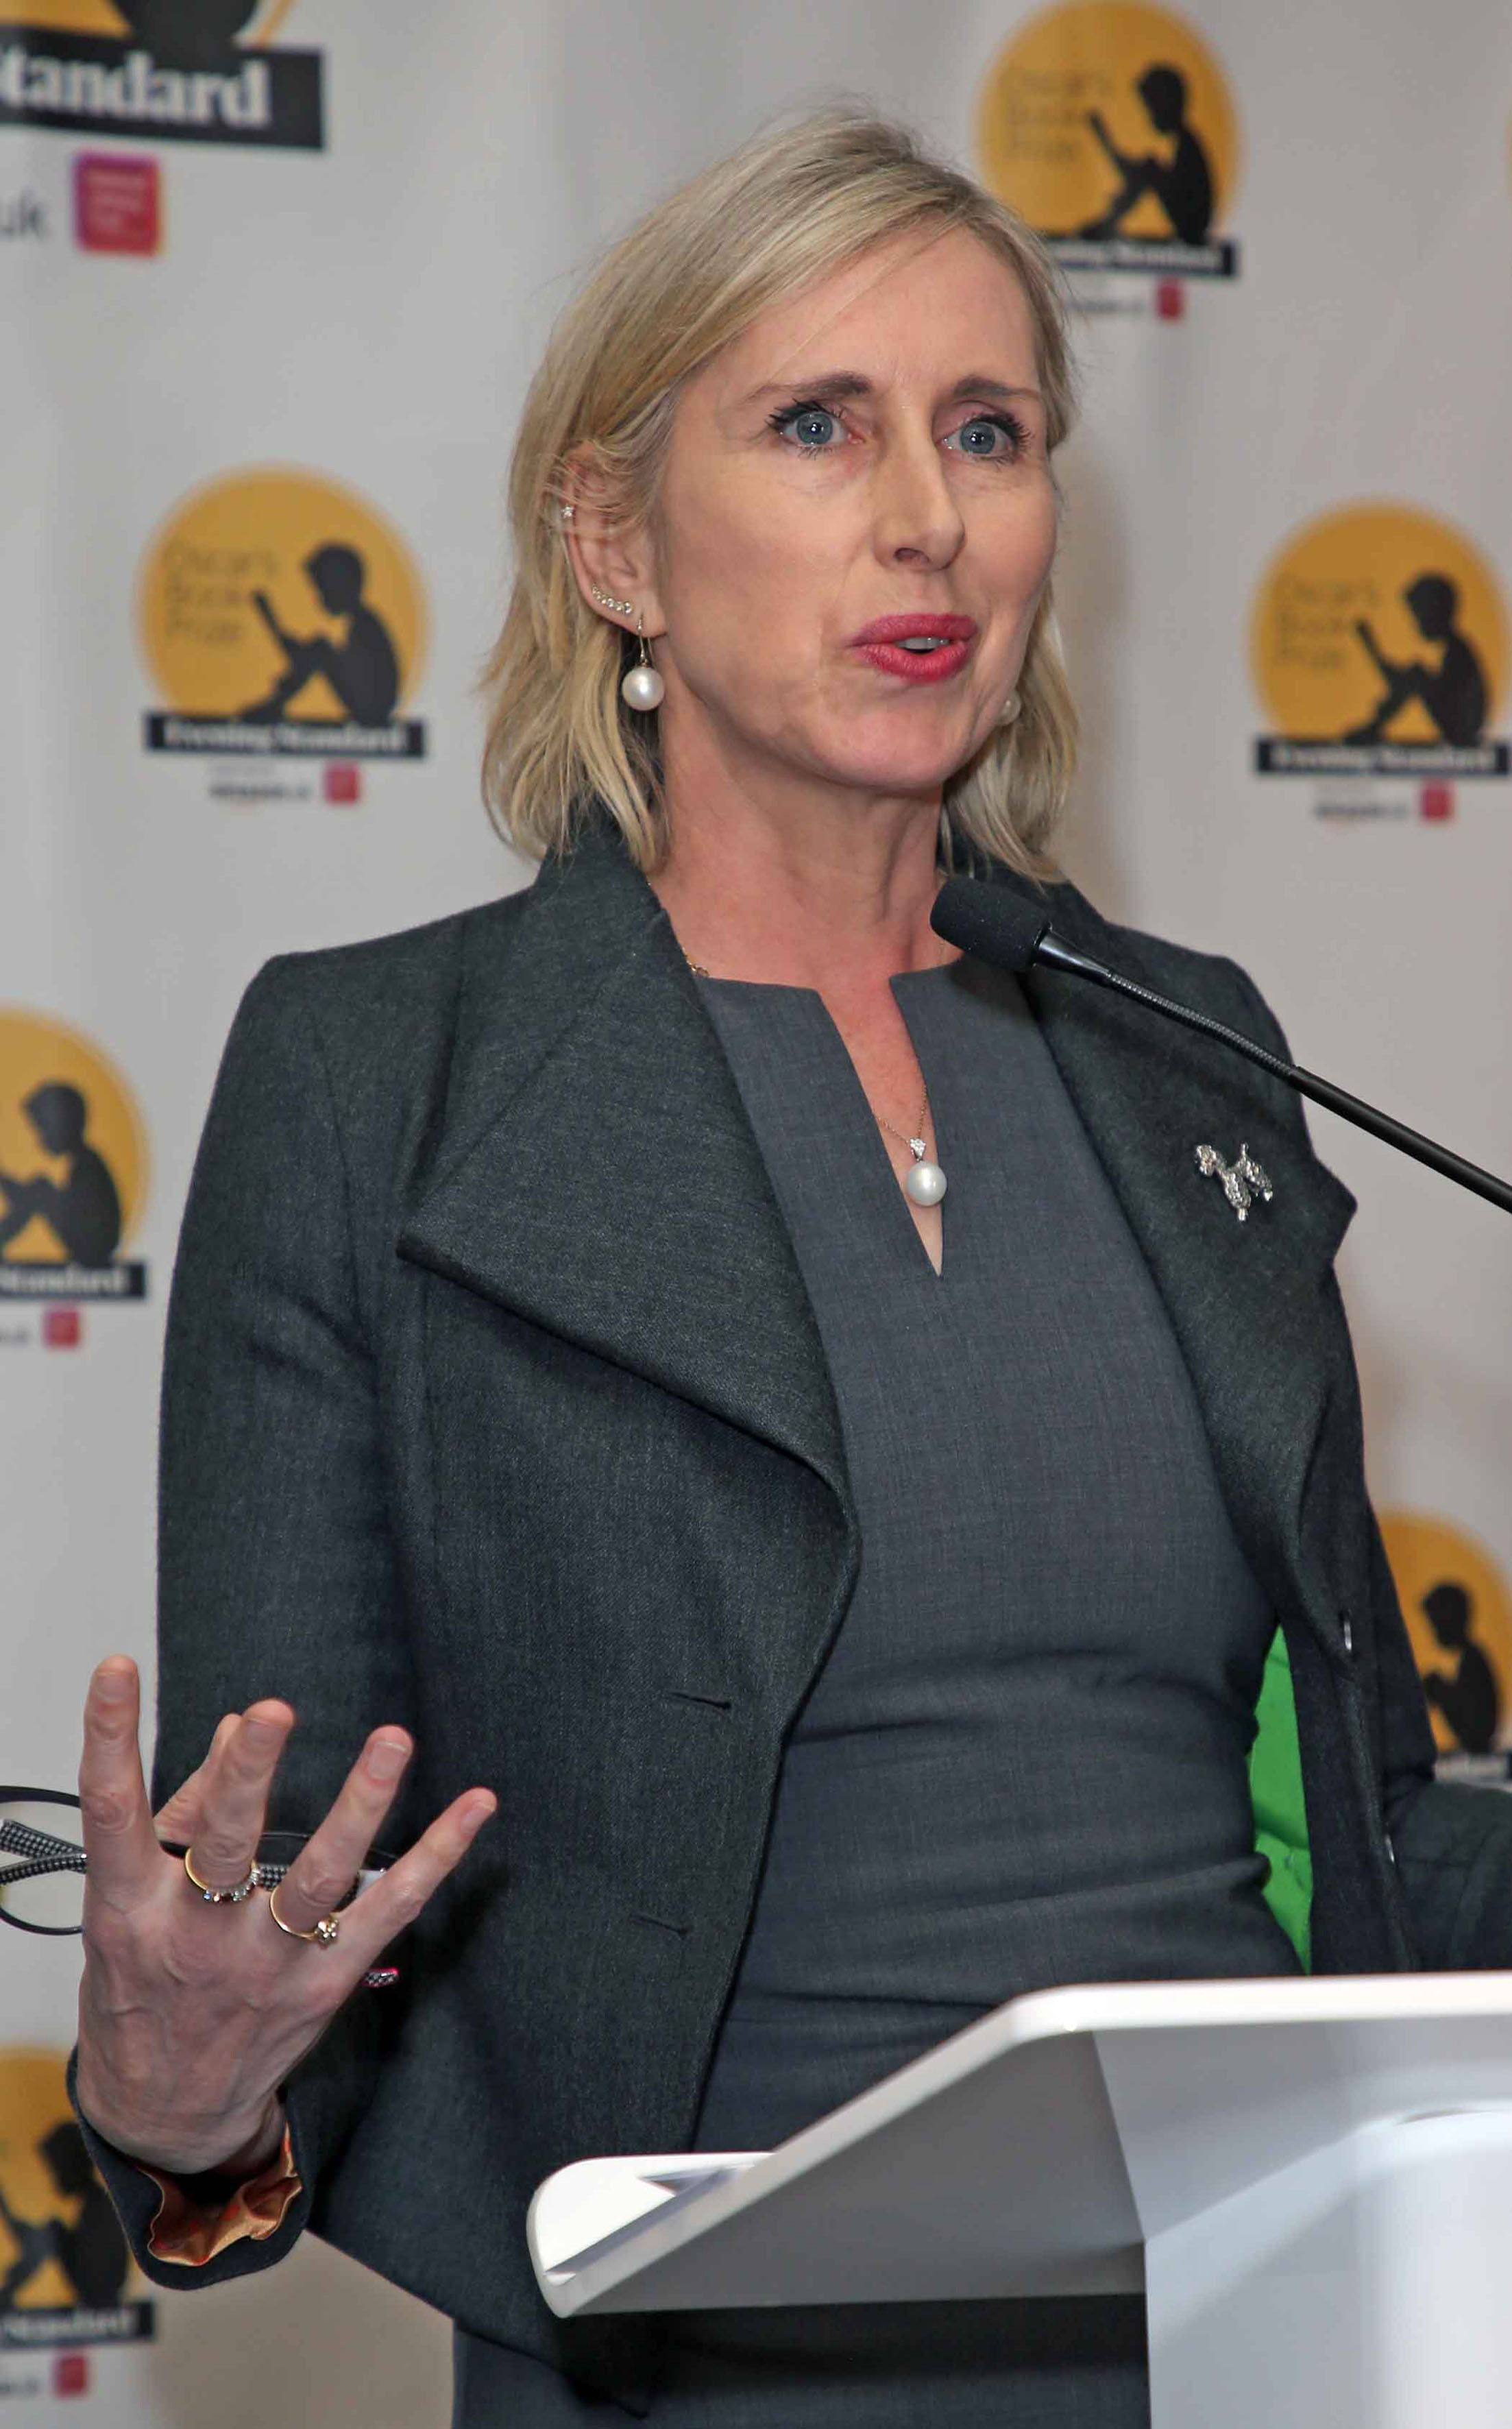 Dream judge: Children's Laureate Lauren Child, who was a judge for the 2019 Oscar's Book Prize, speaking at the awards ceremony at the May Fair Hotel. Photography: Nigel Howard Media